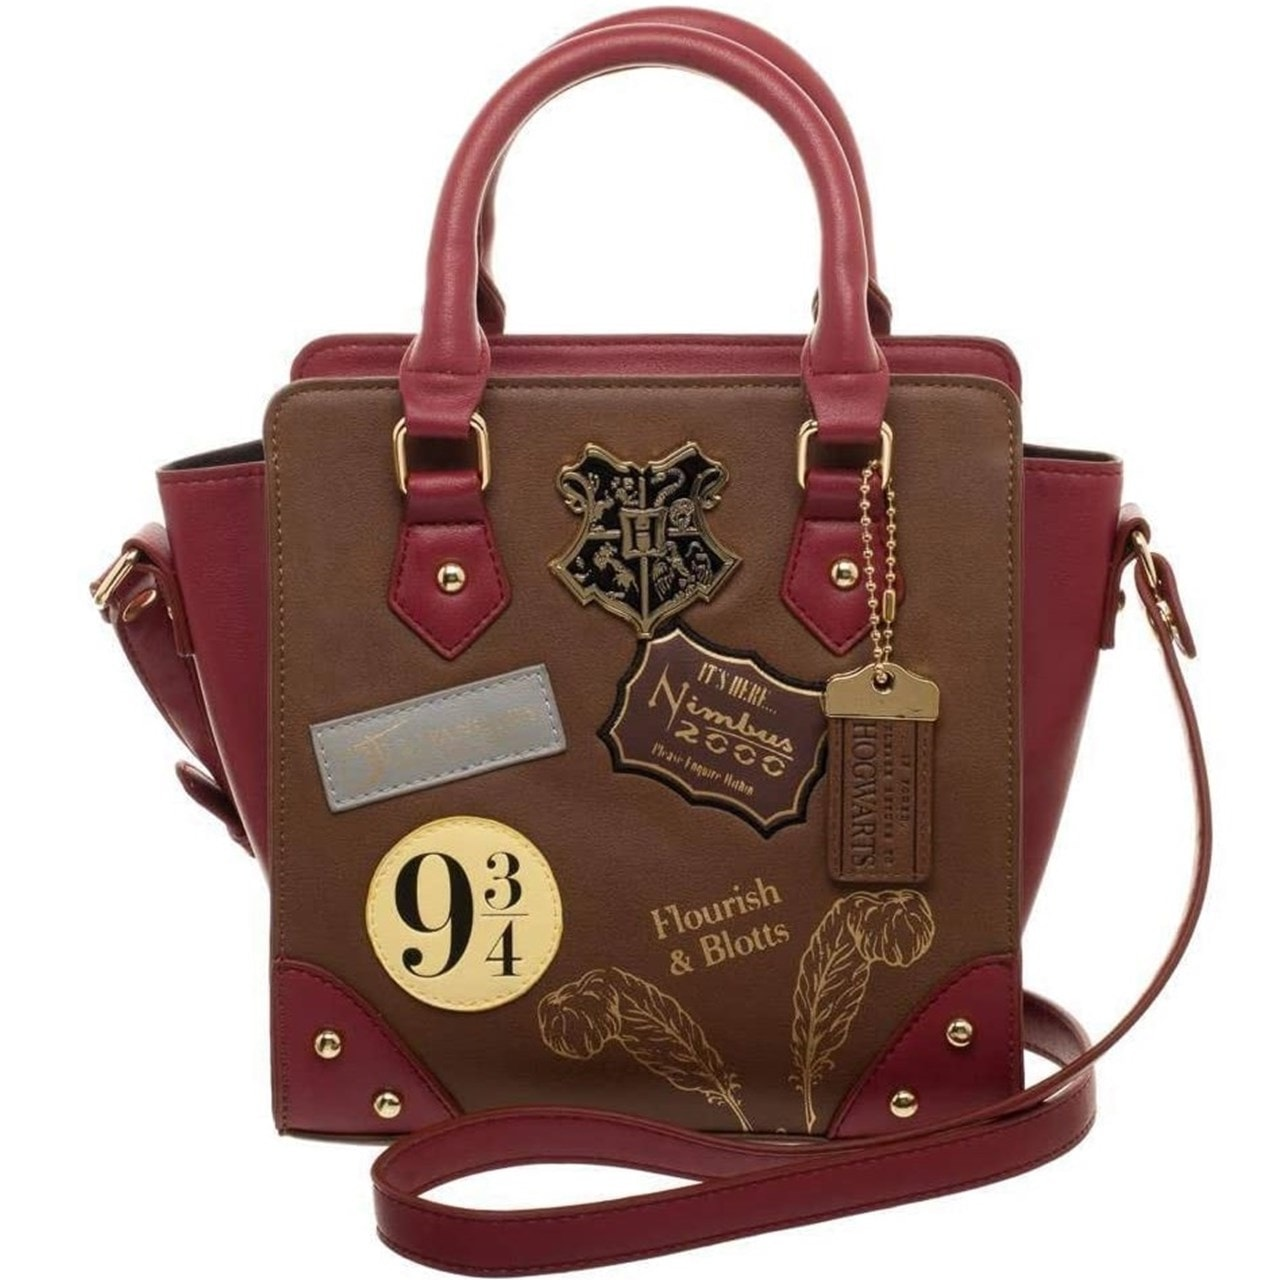 Harry Potter: Hogwarts Express 9 3/4 Handbag - 1